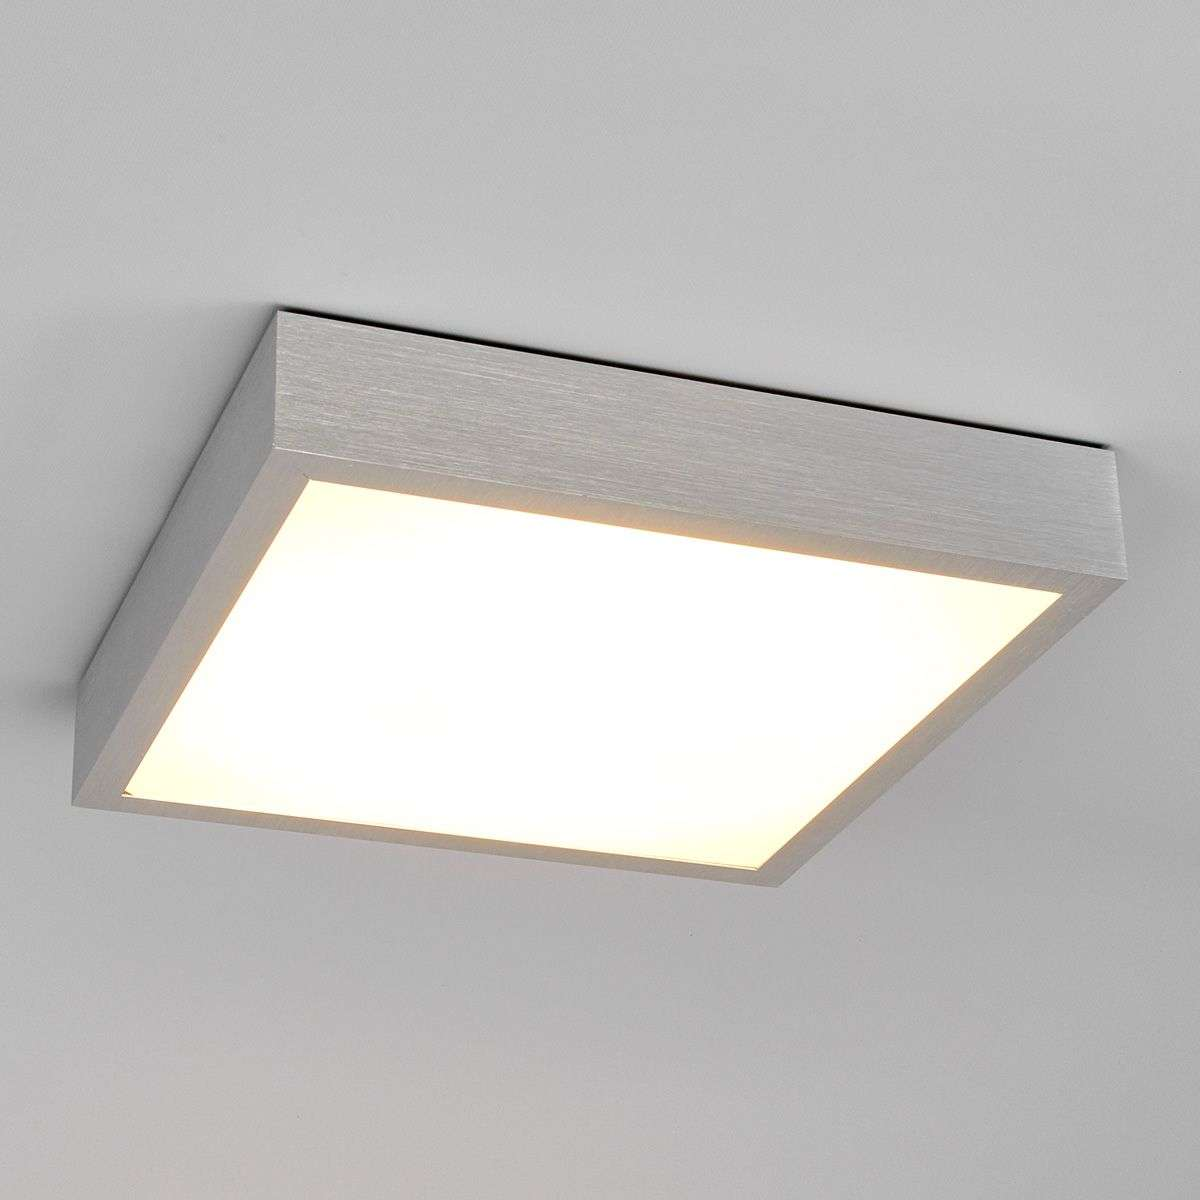 es bathroom screwfix chrome ceiling p lights com prodimagemedium light